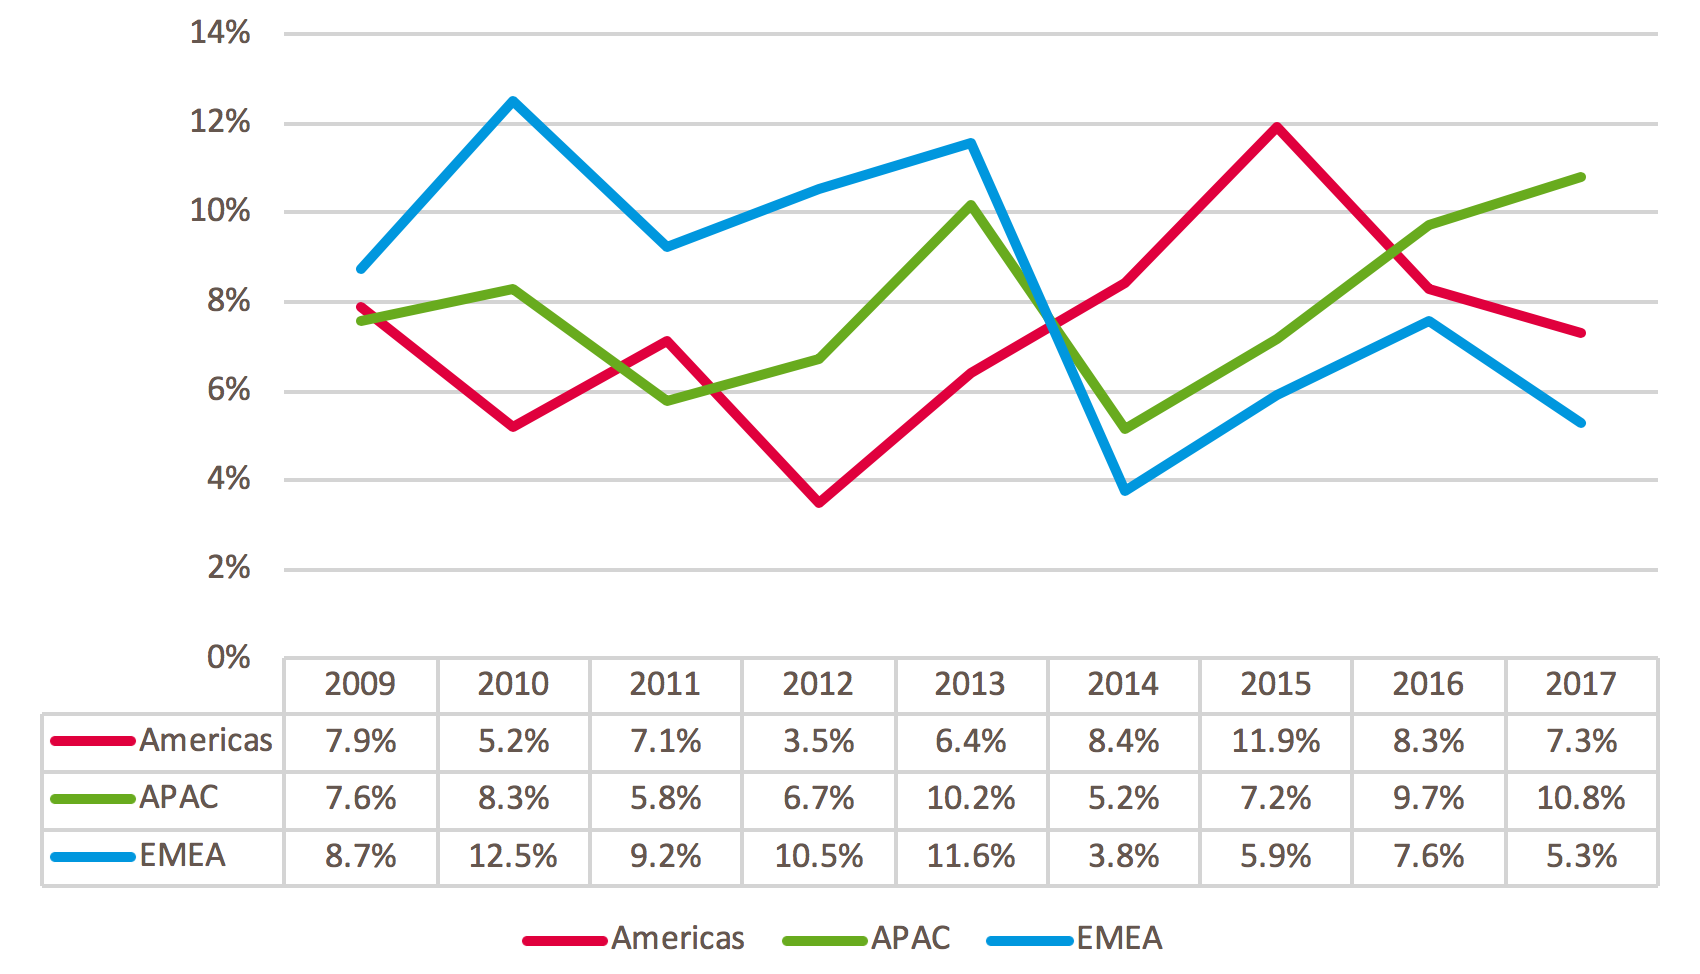 Figure 2. Percentage of M&A deal leaks by region, 2009-2017